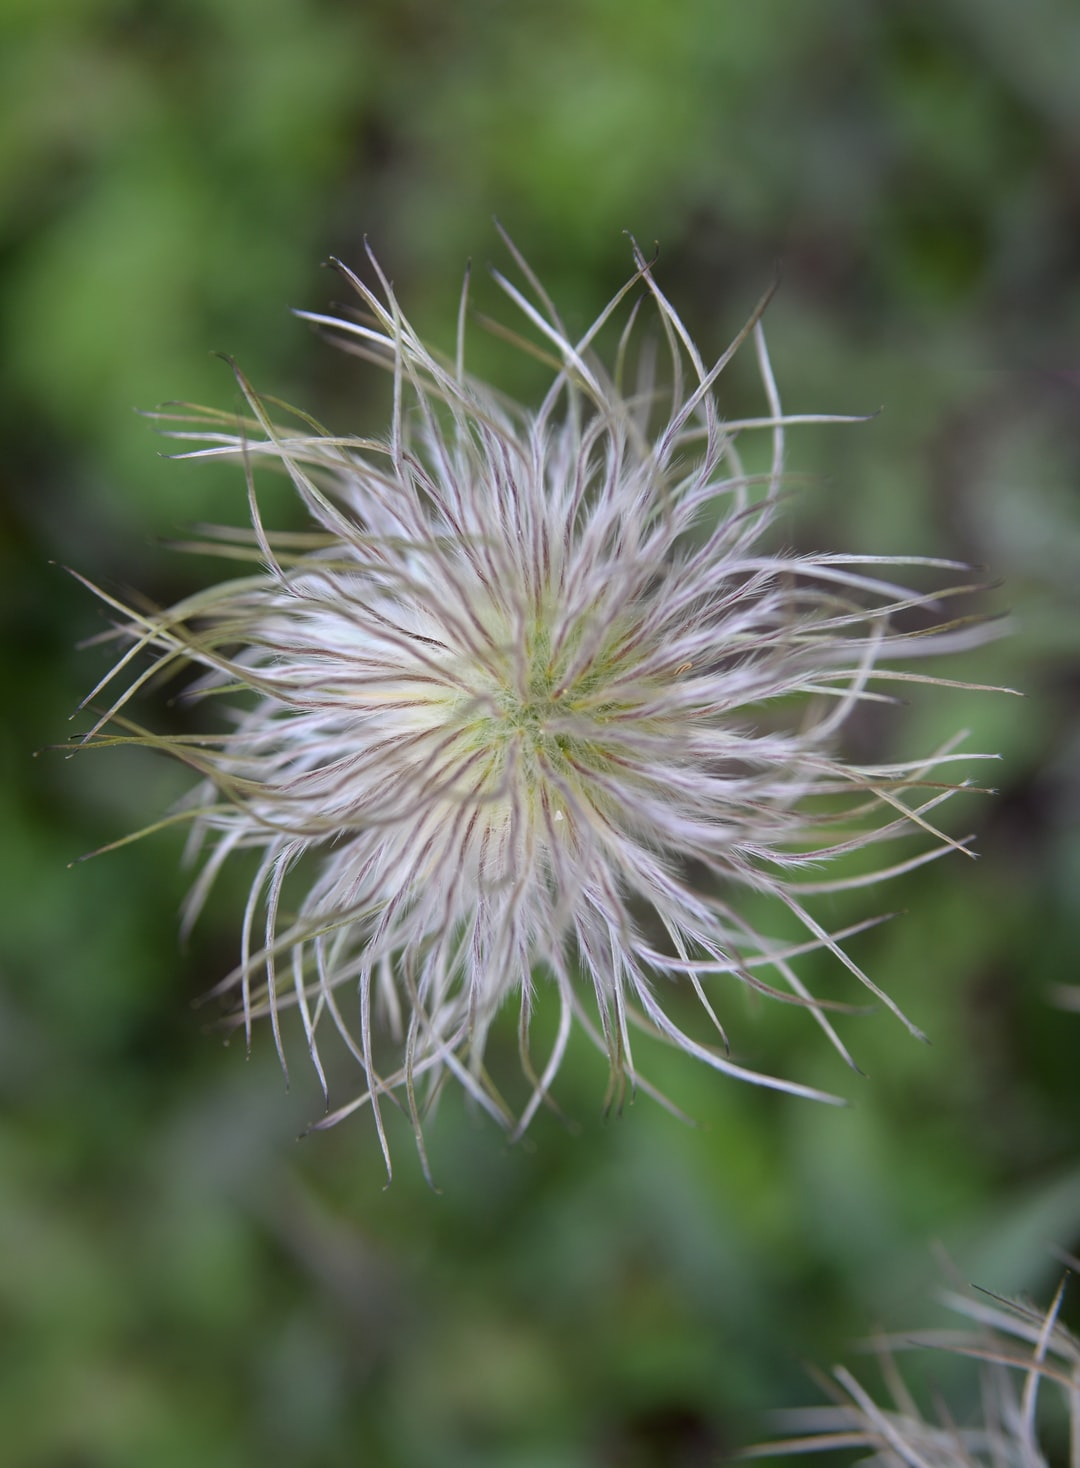 This is the seed of the pasque flower, or Pulsatilla, a violet and gold bell-shaped flower native to the meadows and prairies of Asia, Europe and North America.